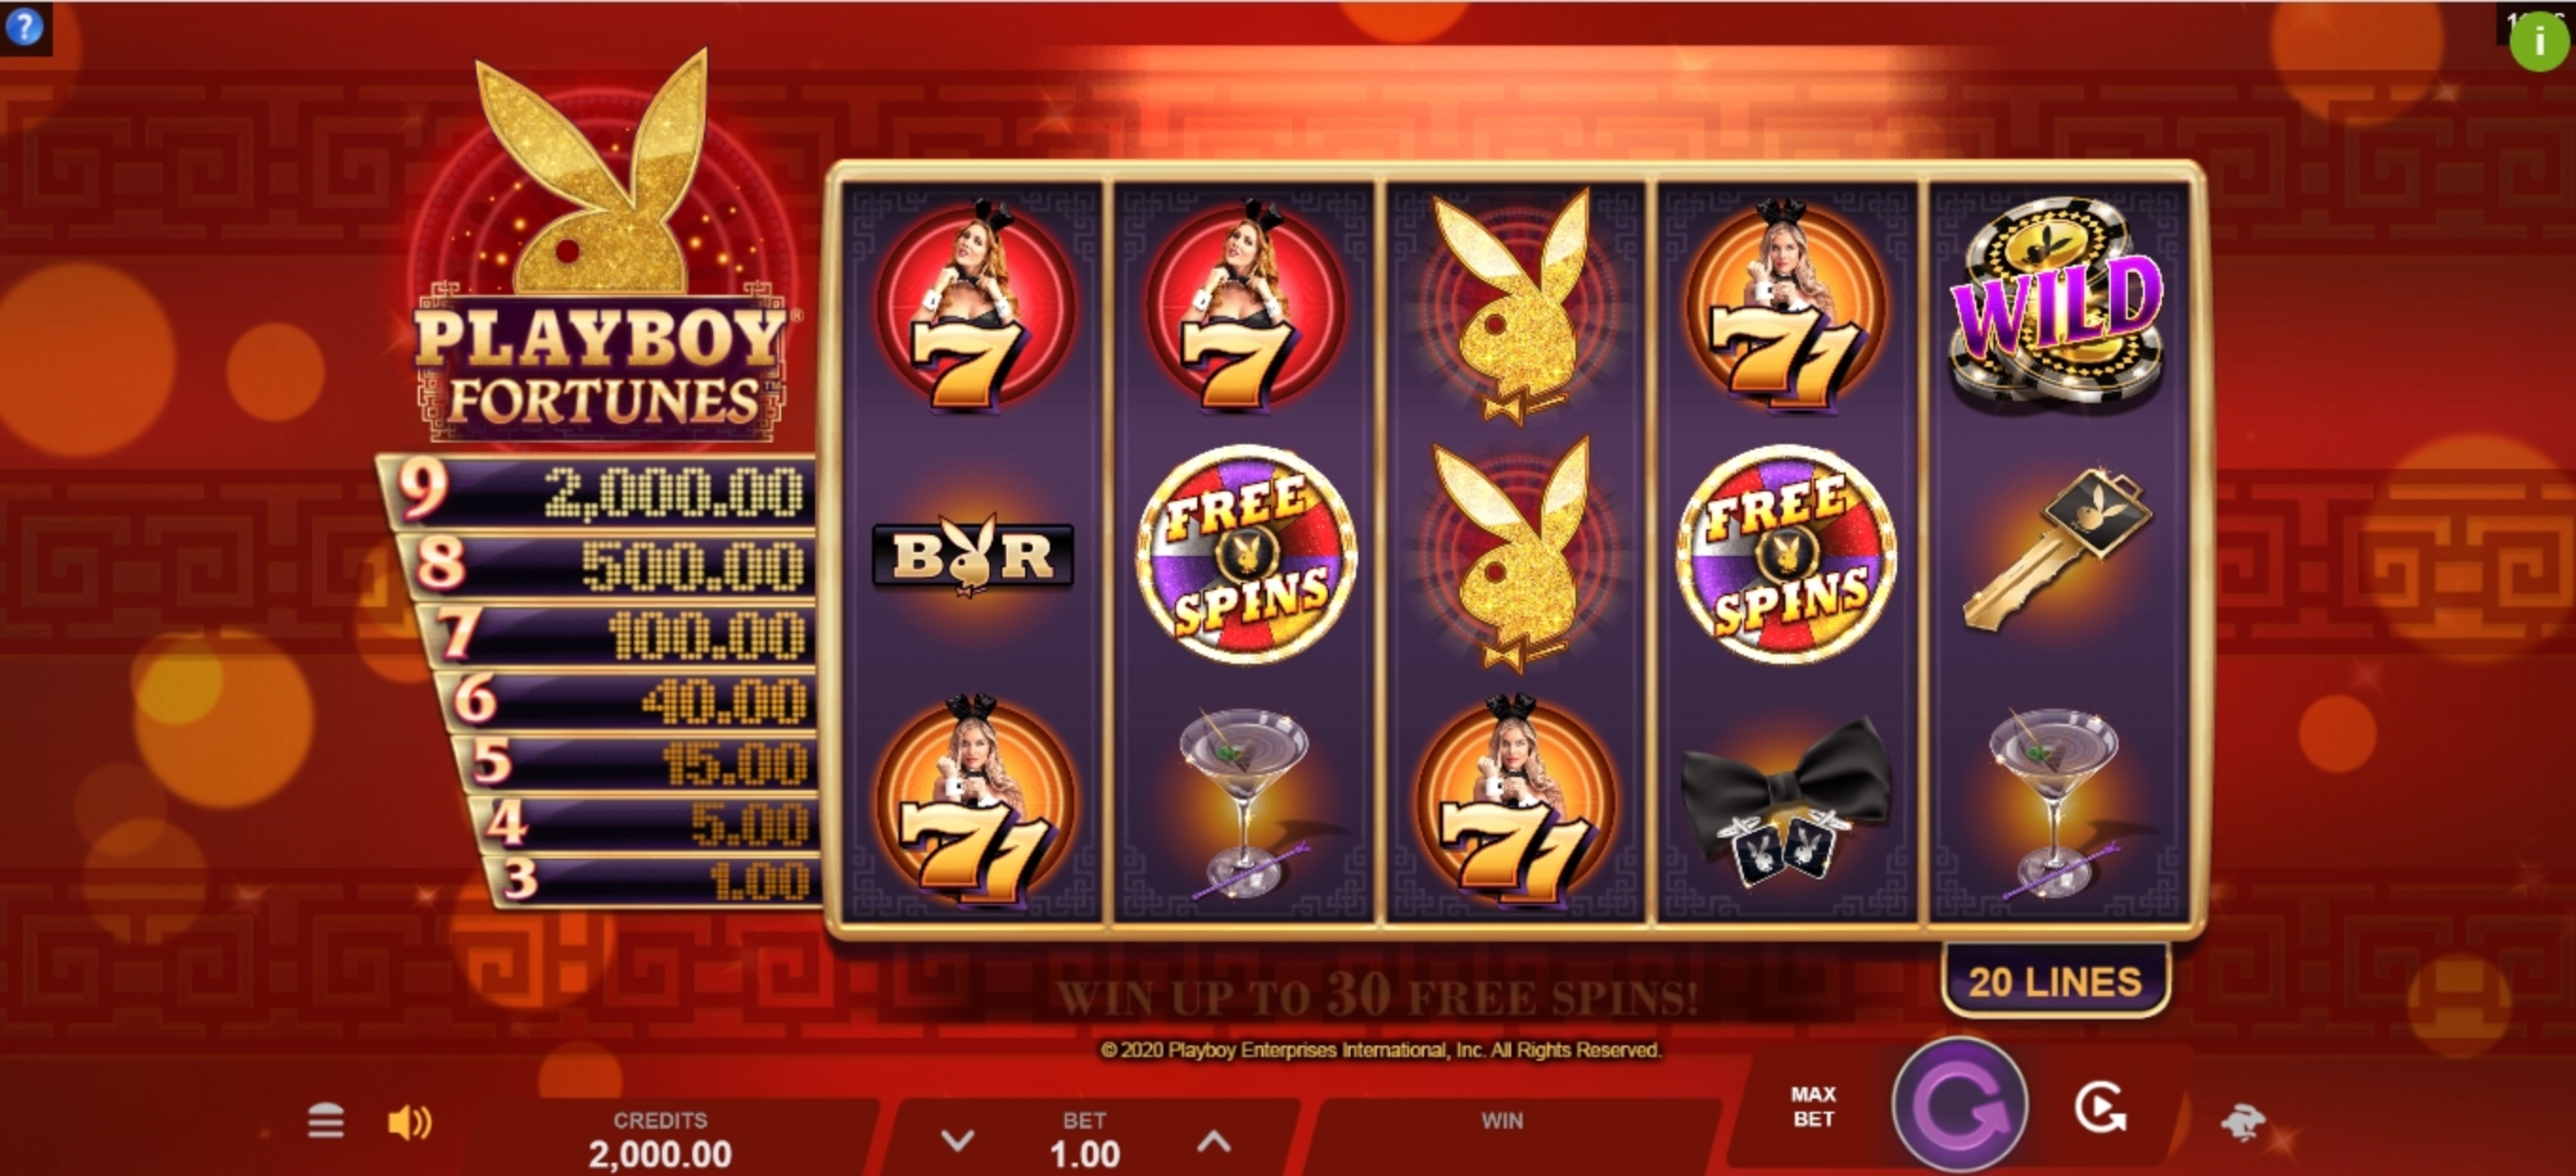 Reels in Playboy Fortunes Slot Game by Gameburger Studios